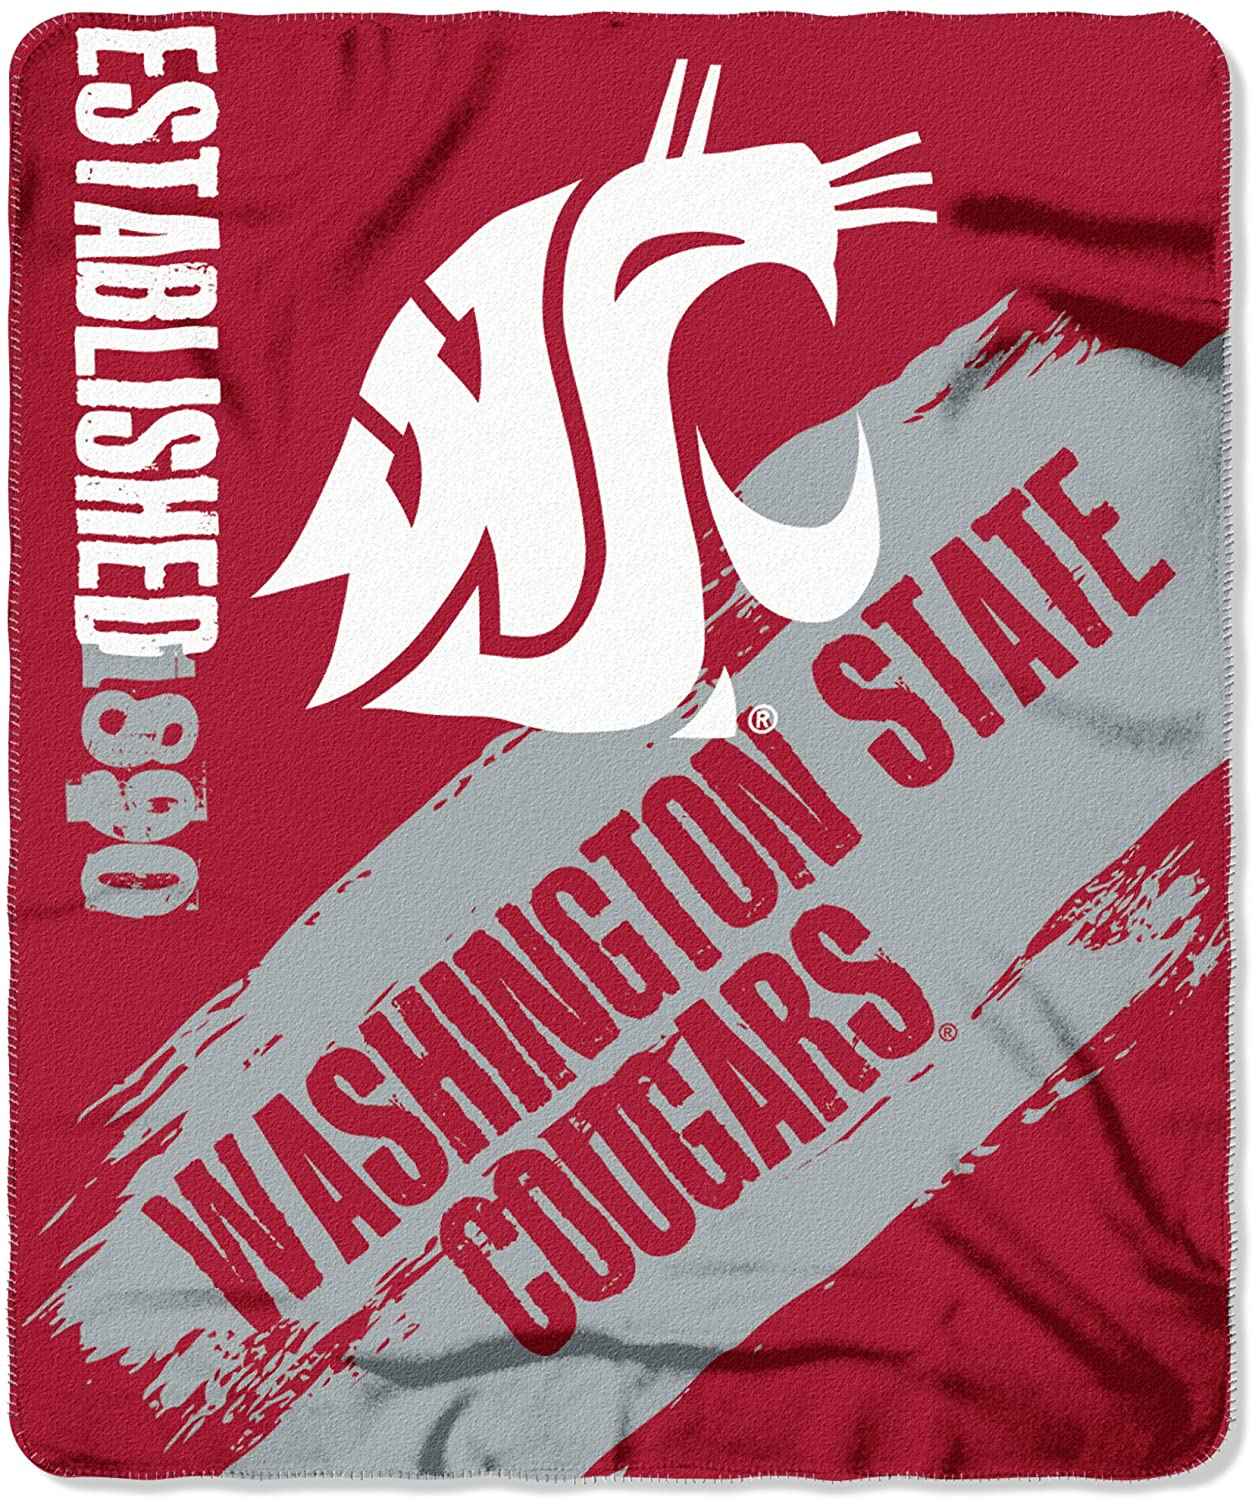 Officially Licensed Ncaa Printed Throw Washington State Cougars Fleece Blanket